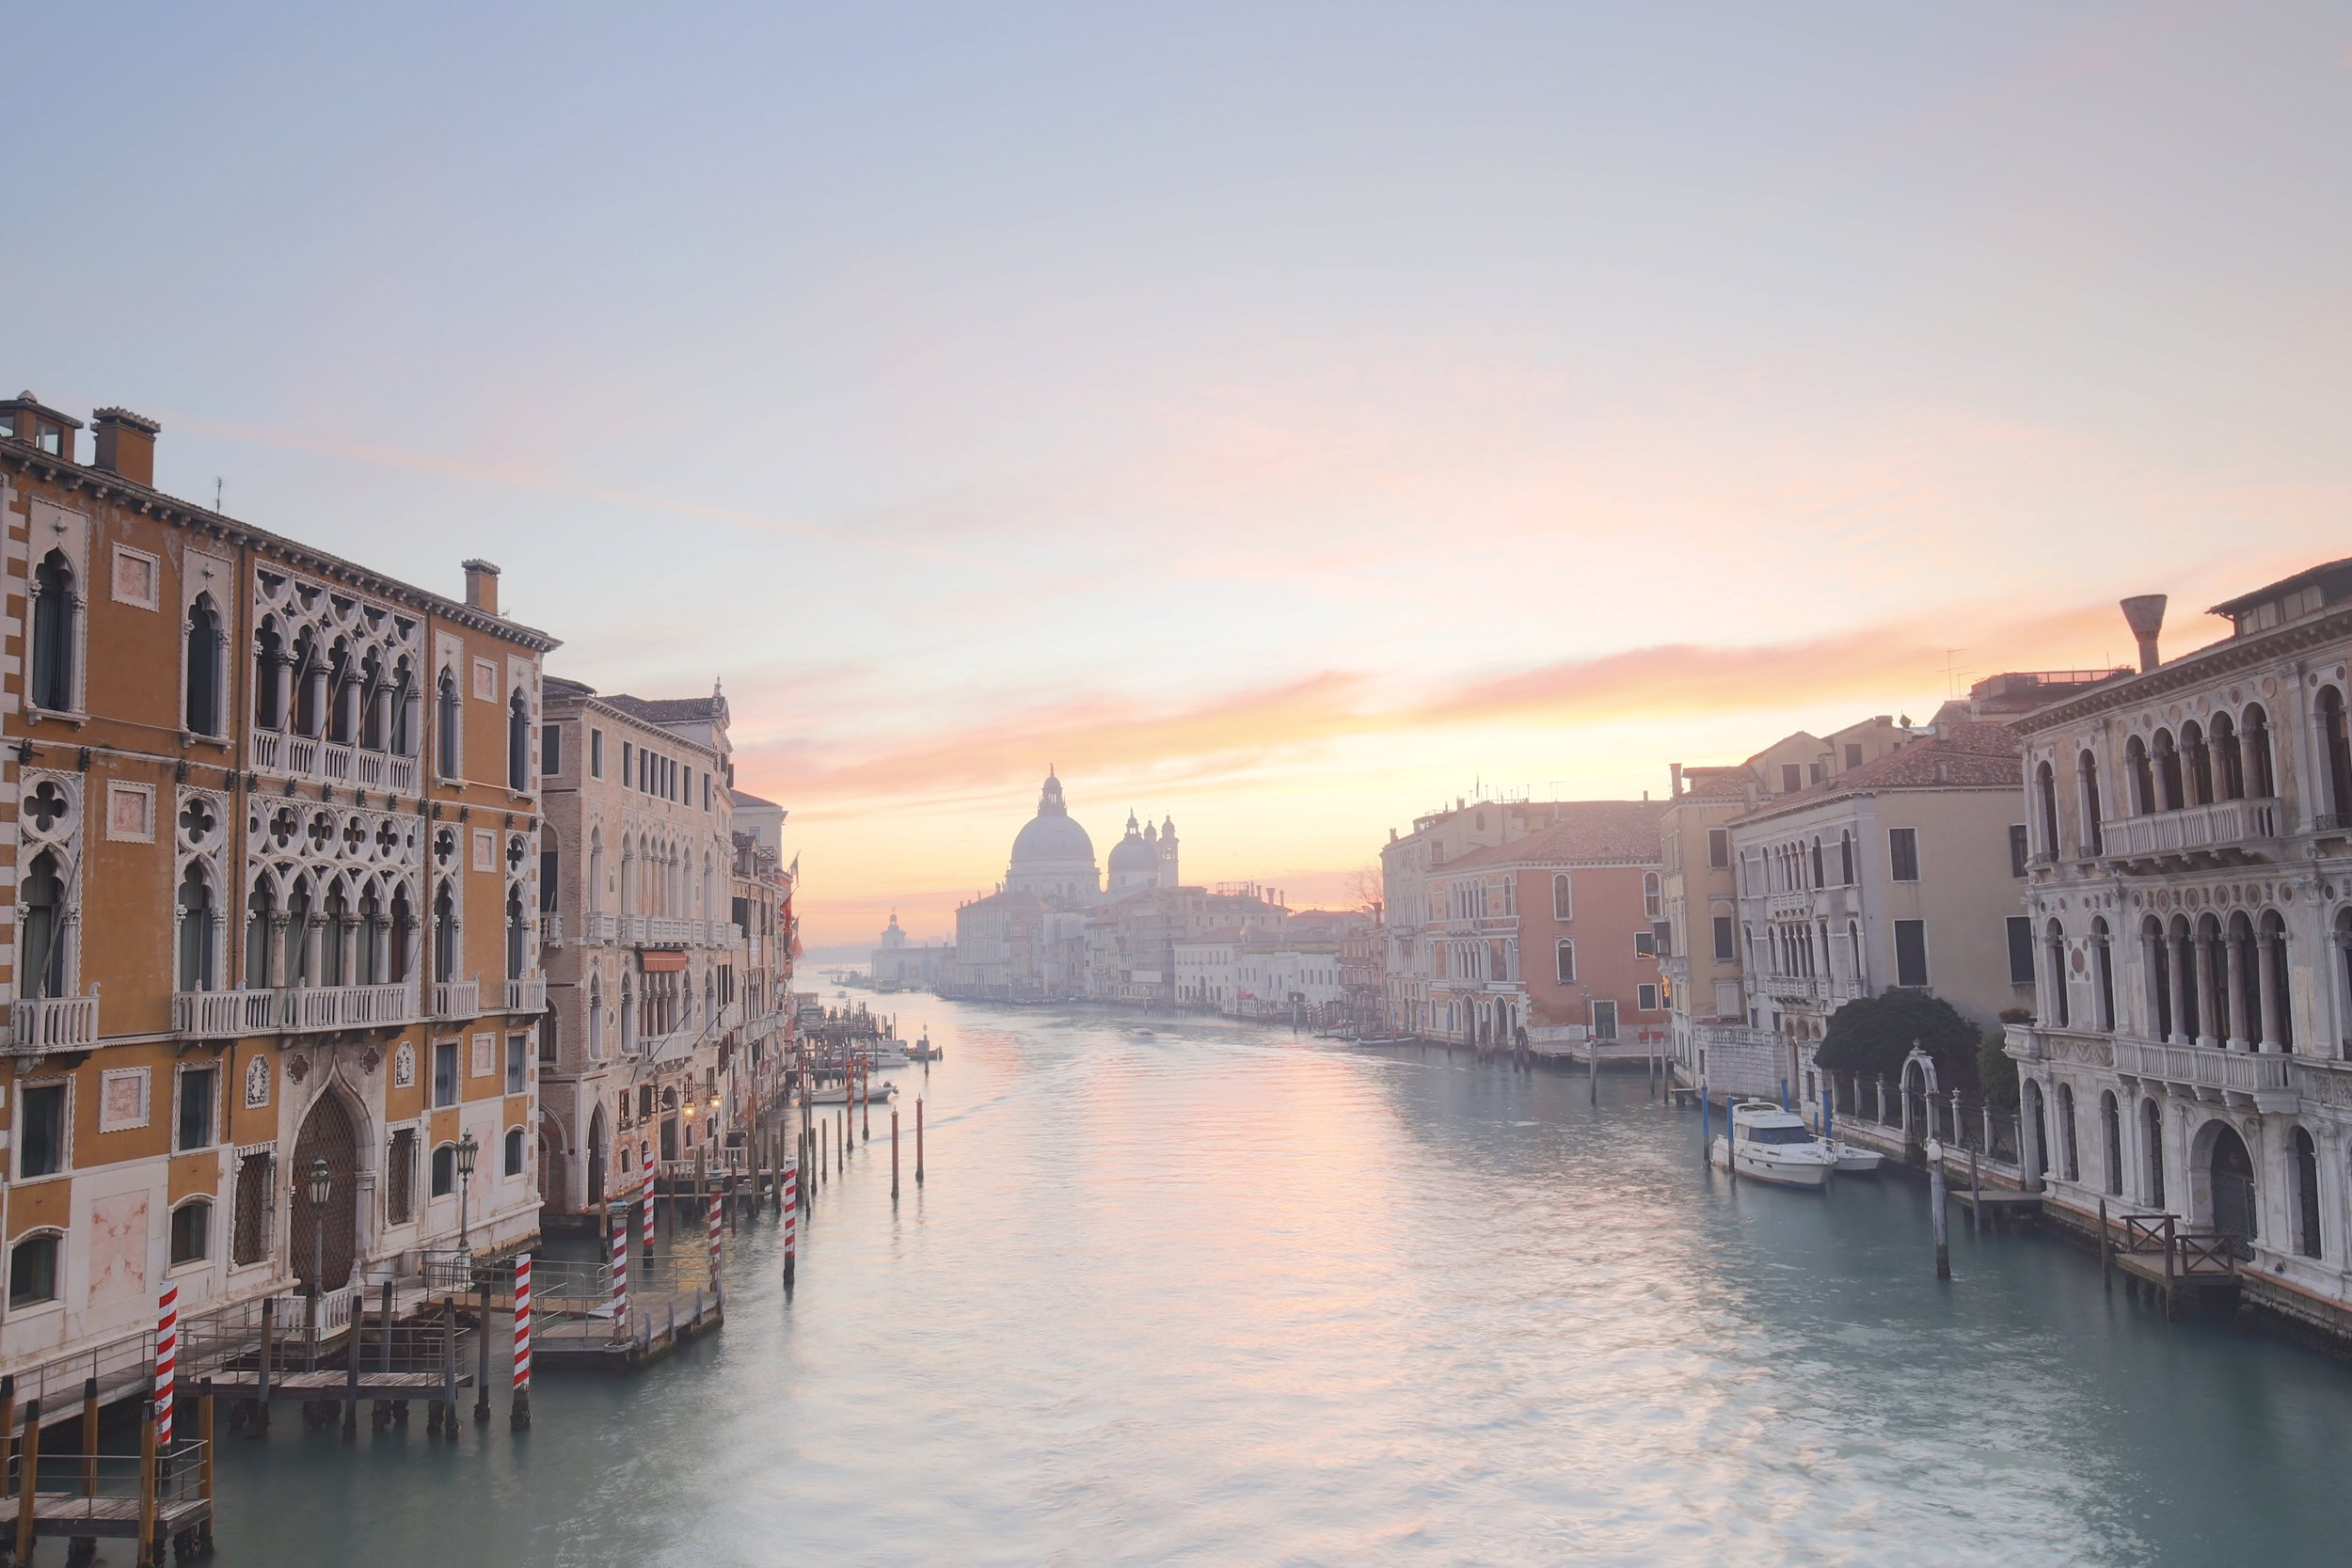 A beautiful Venice sunrise from the Pont dell'Accademia - with pink water and sky.